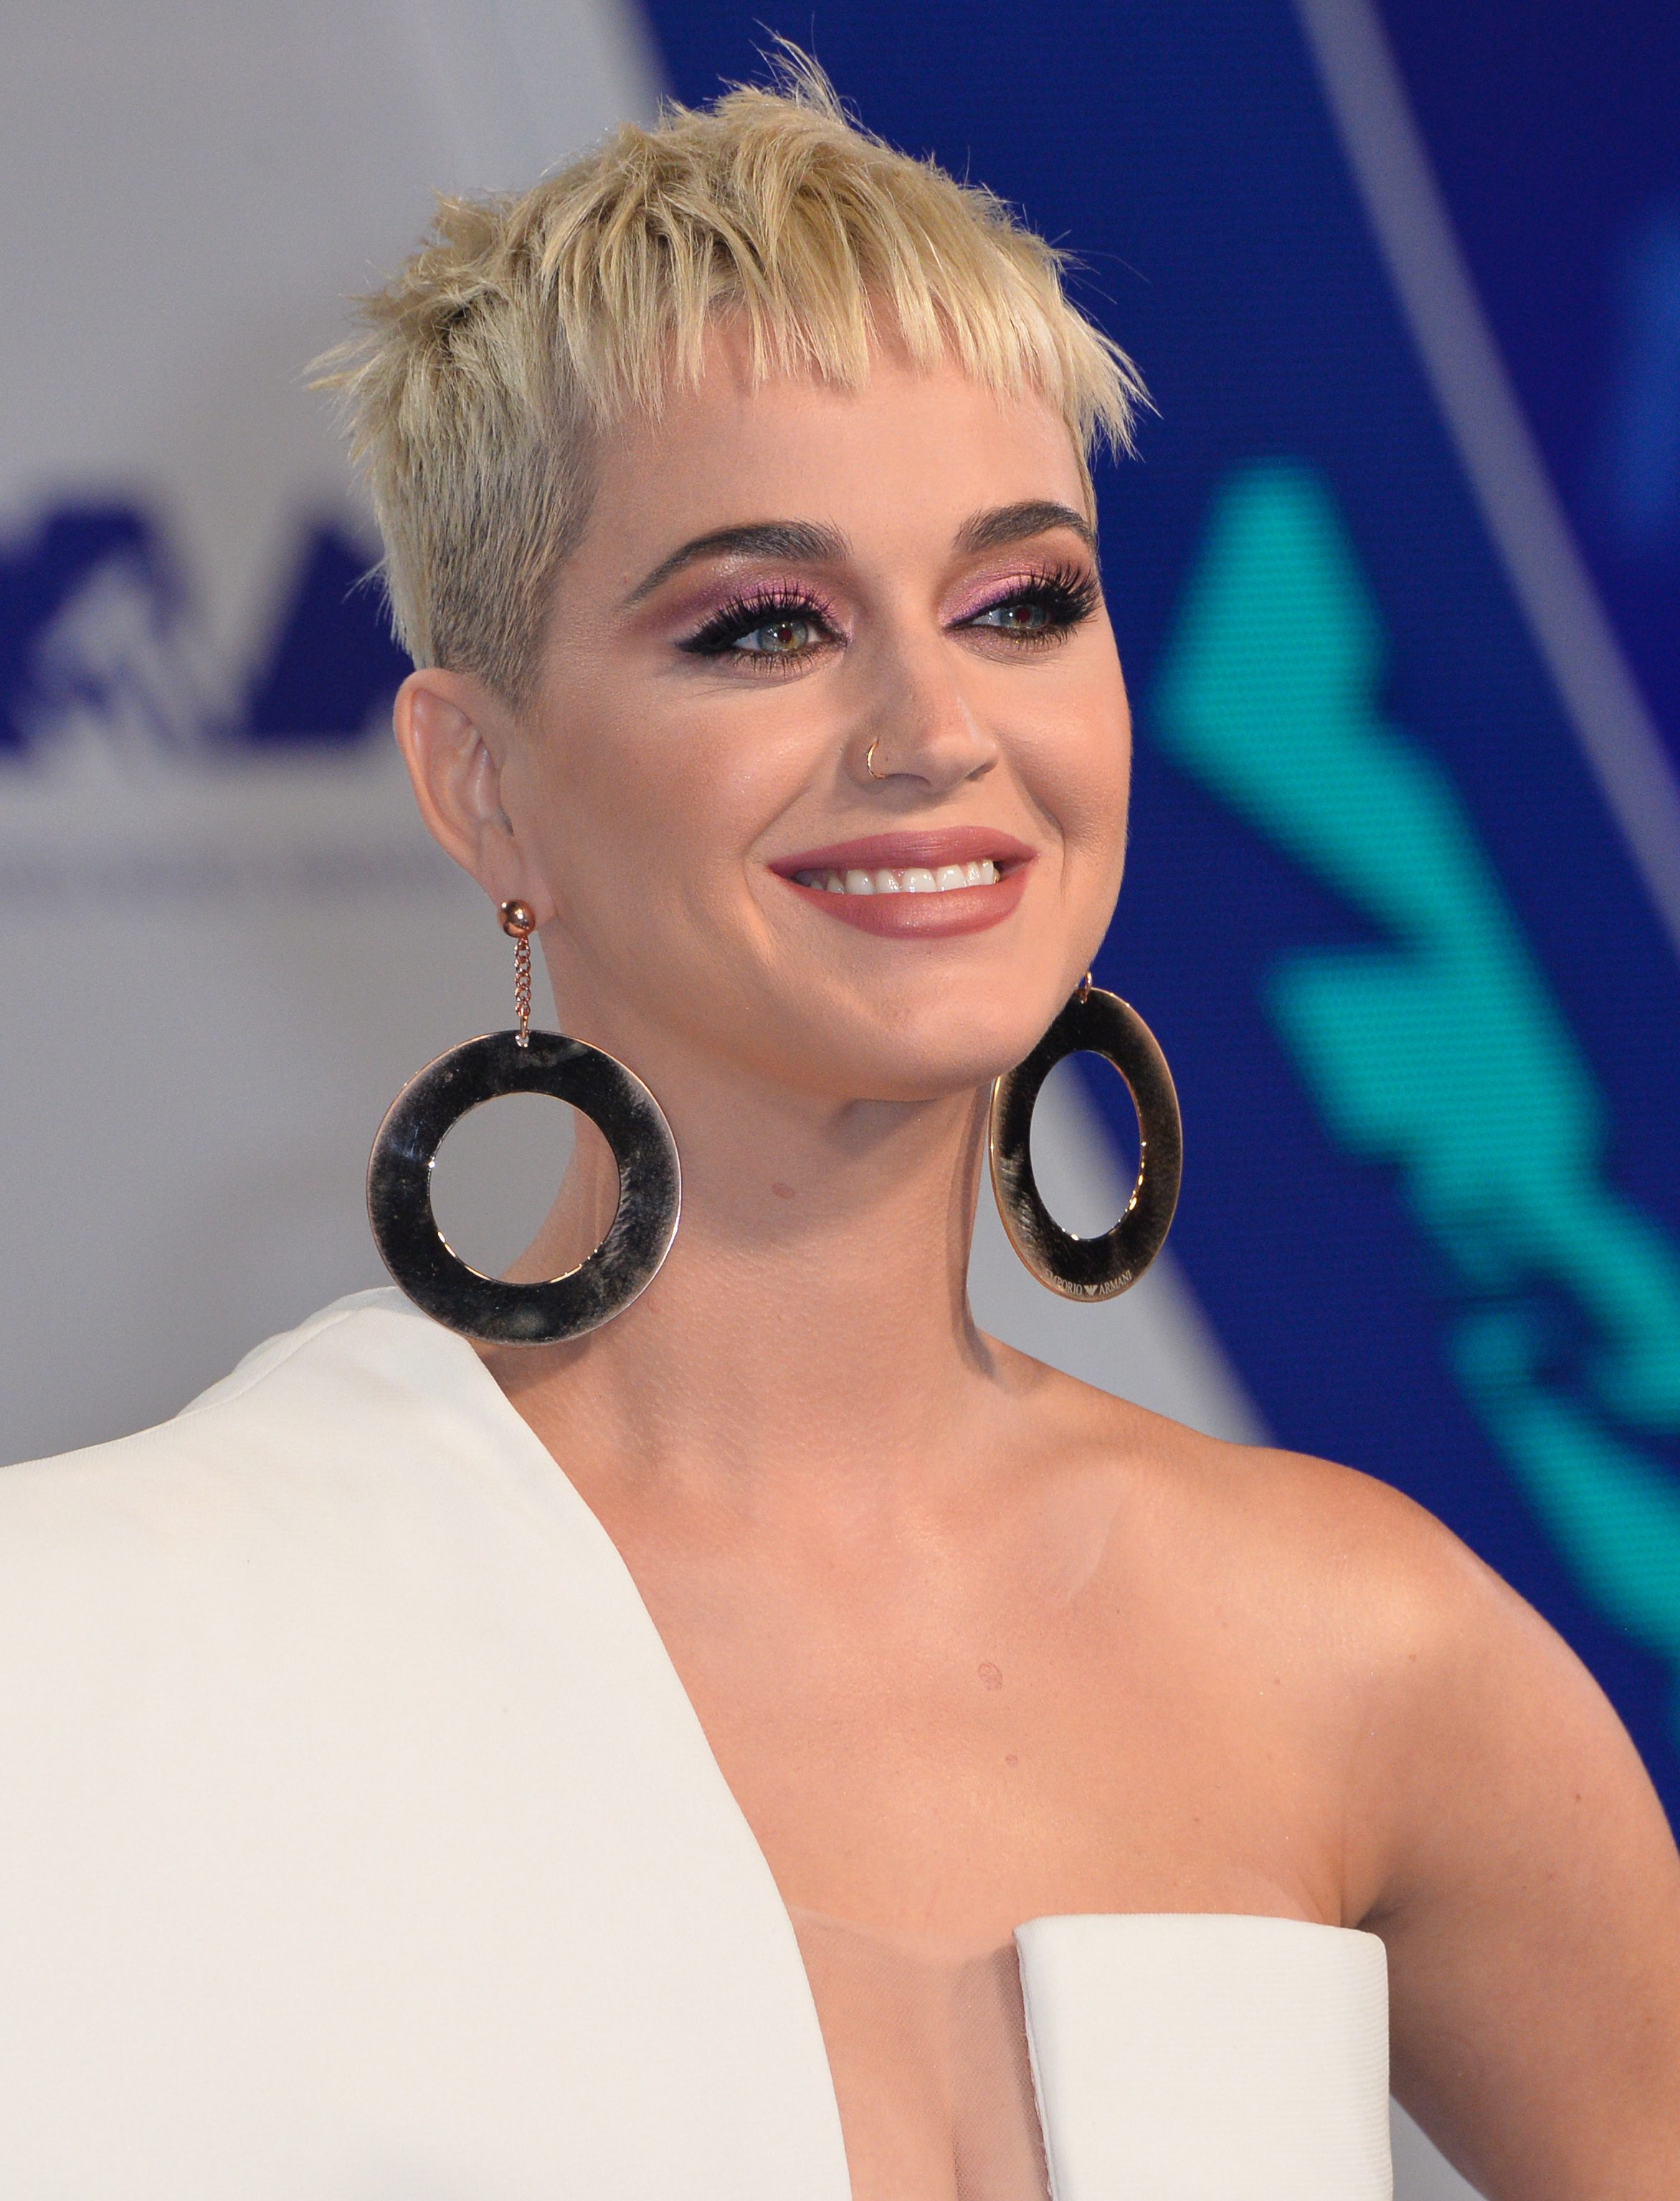 Katy Perry's French Cropped Undercut